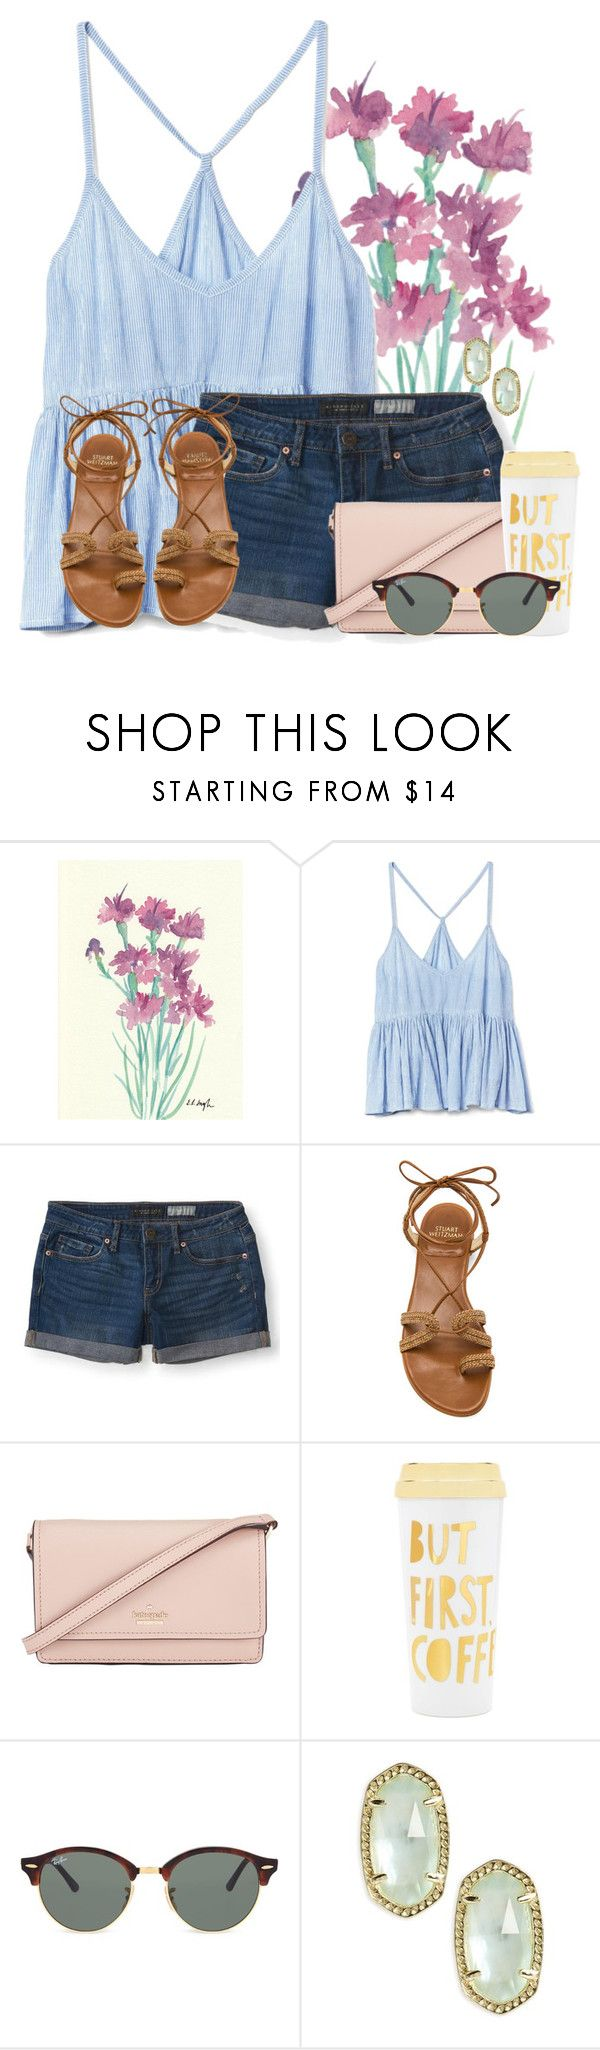 Home safe and sound by auburnlady ❤ liked on Polyvore featuring Gap, Aéropostale, Stuart Weitzman, Kate Spade, ban.do, Ray-Ban and Kendra Scott